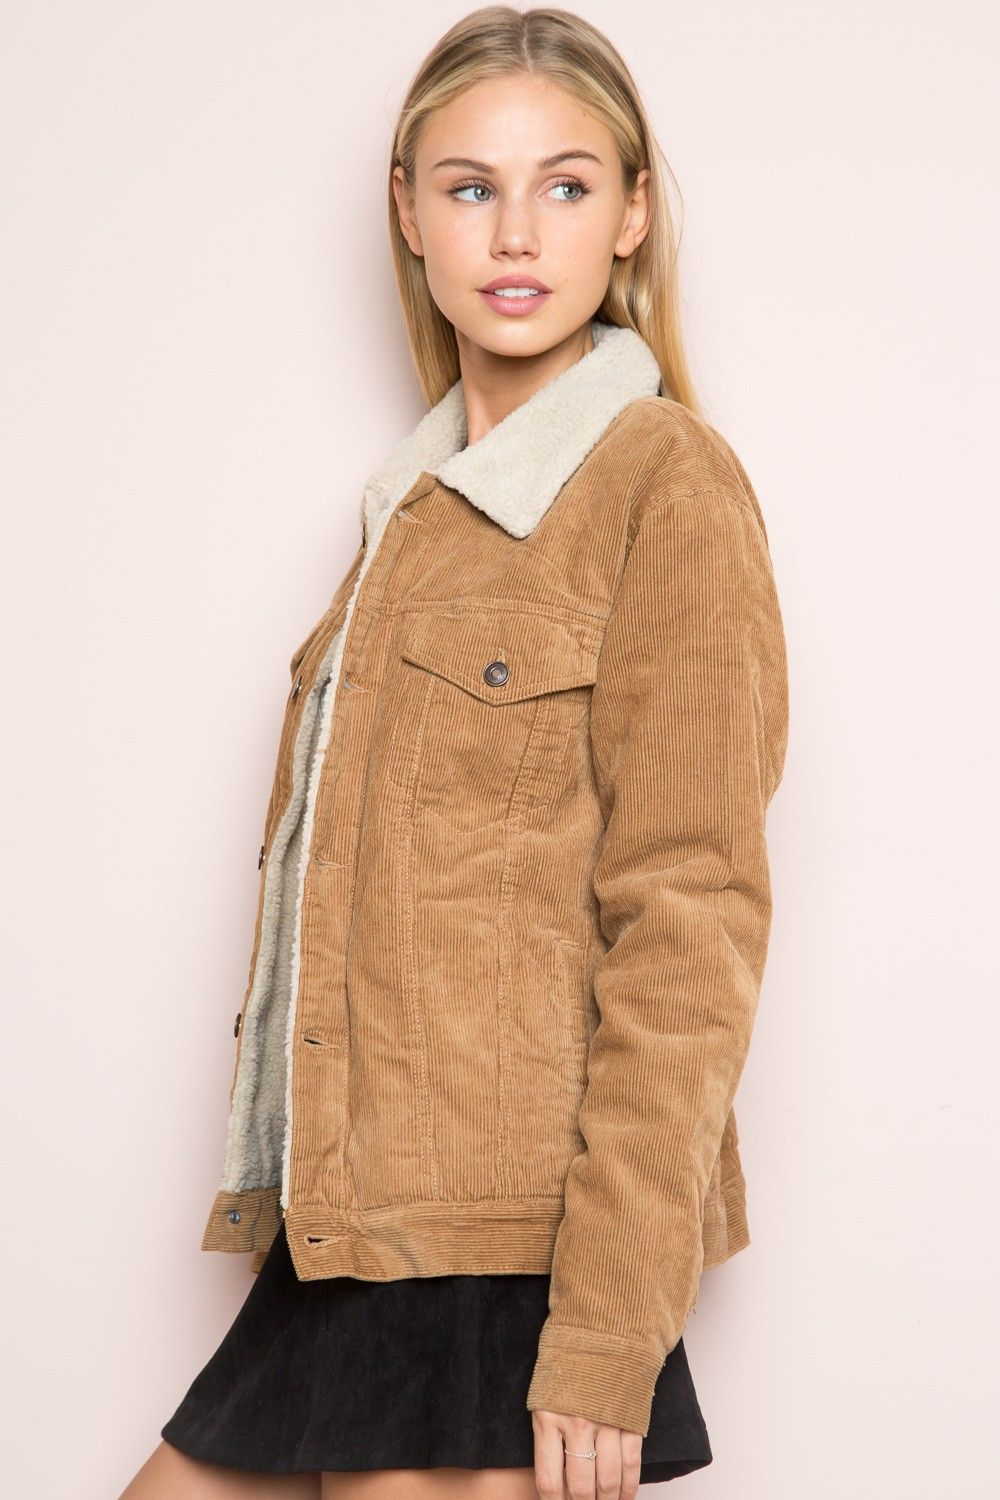 Brandy U2665 Melville | Elisha Fur Corduroy Jacket - Outerwear - Clothing | So Fly | Pinterest ...